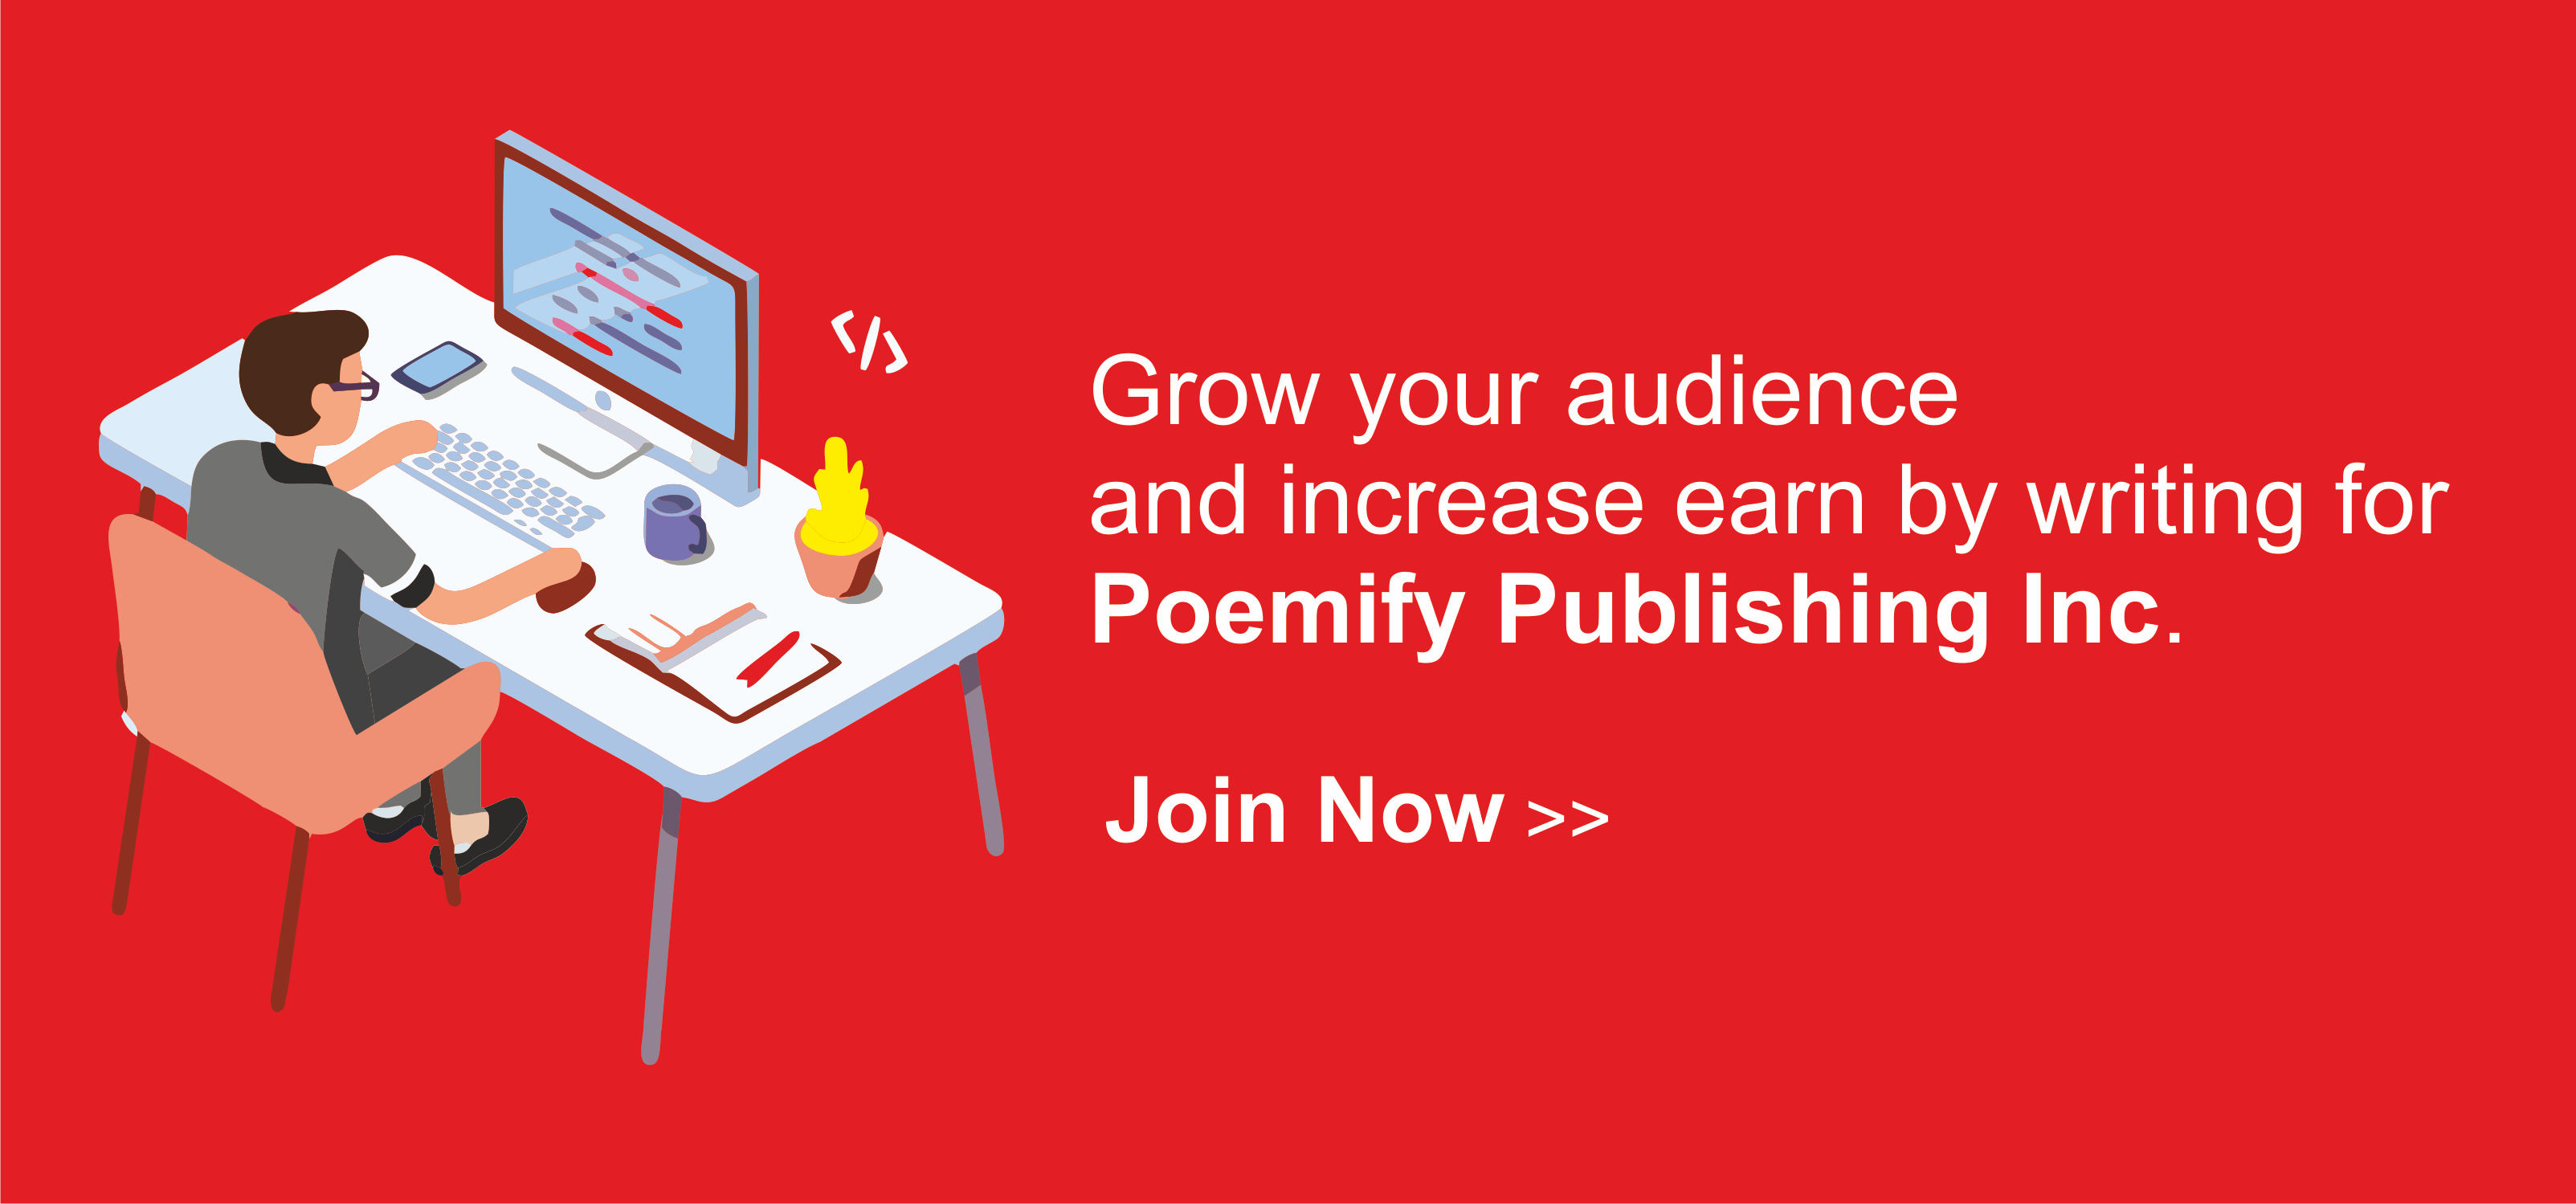 Poemify Publishing Inc